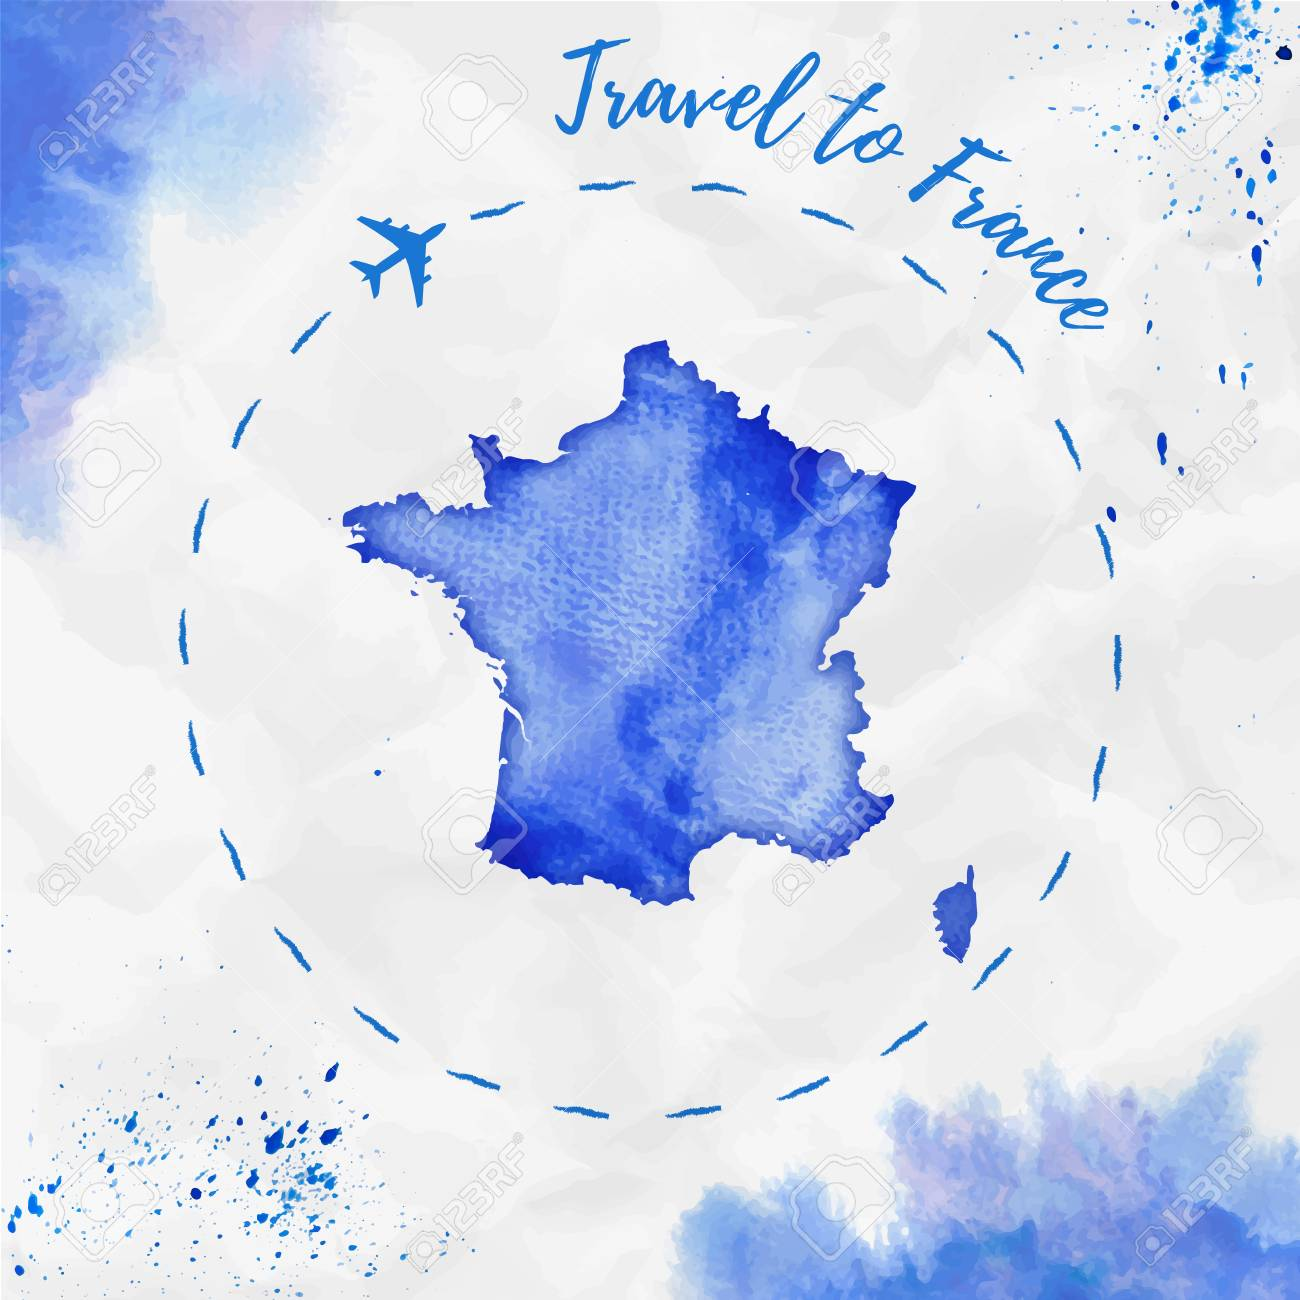 Map Of France Poster.France Watercolor Map In Blue Colors Travel To France Poster